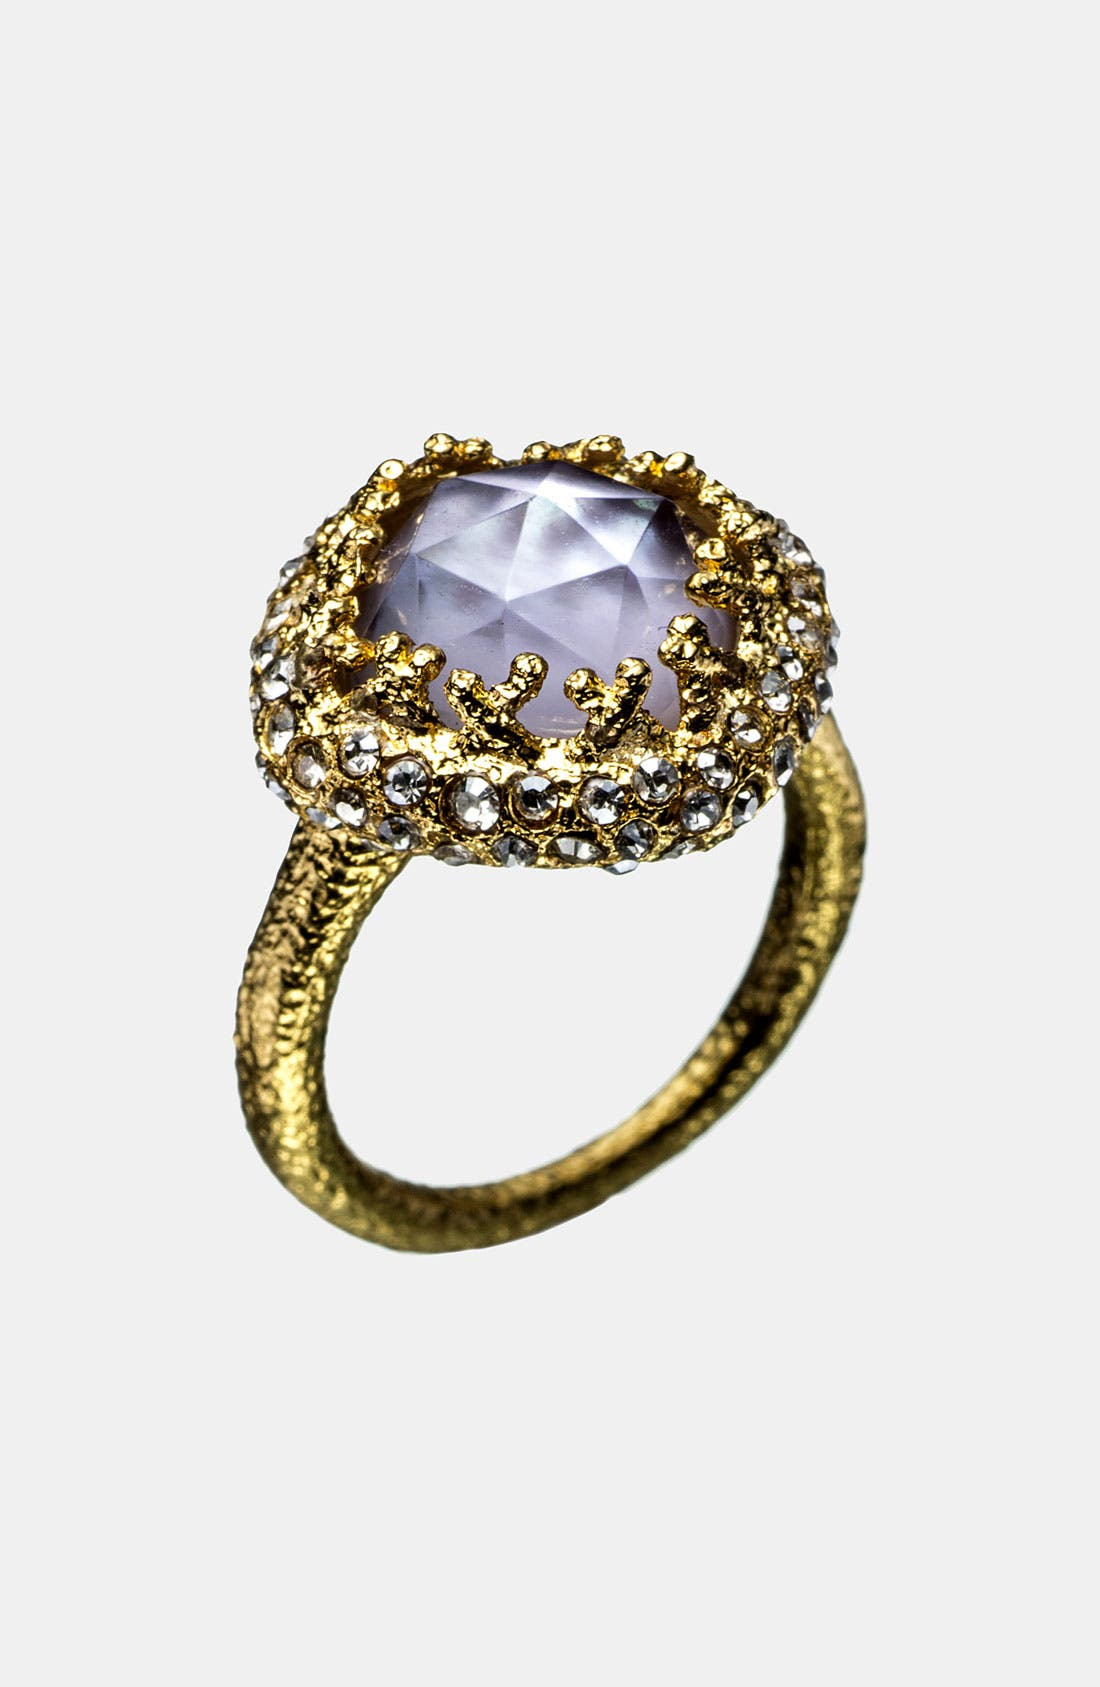 Main Image - Alexis Bittar 'Elements - Mauritius' Stone Ring